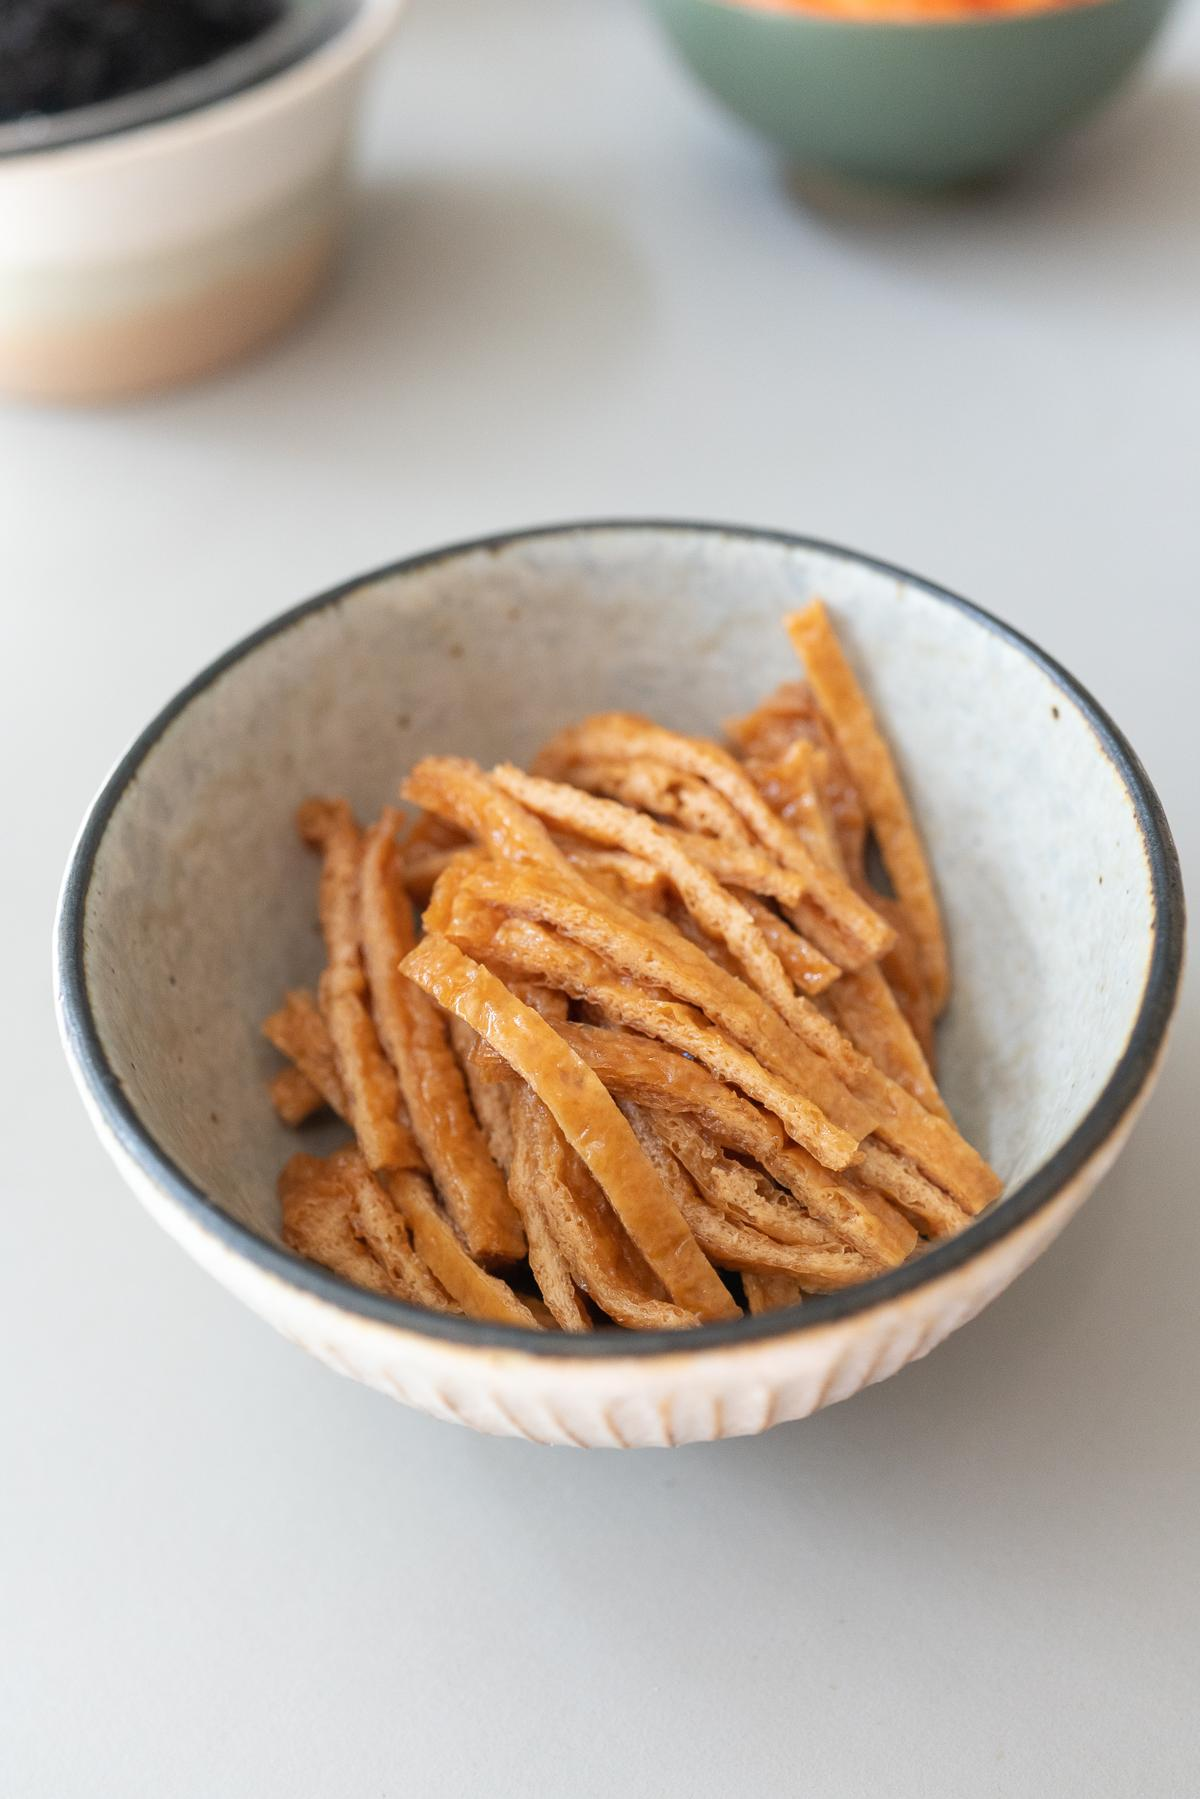 Aburaage, sliced and placed in a bowl